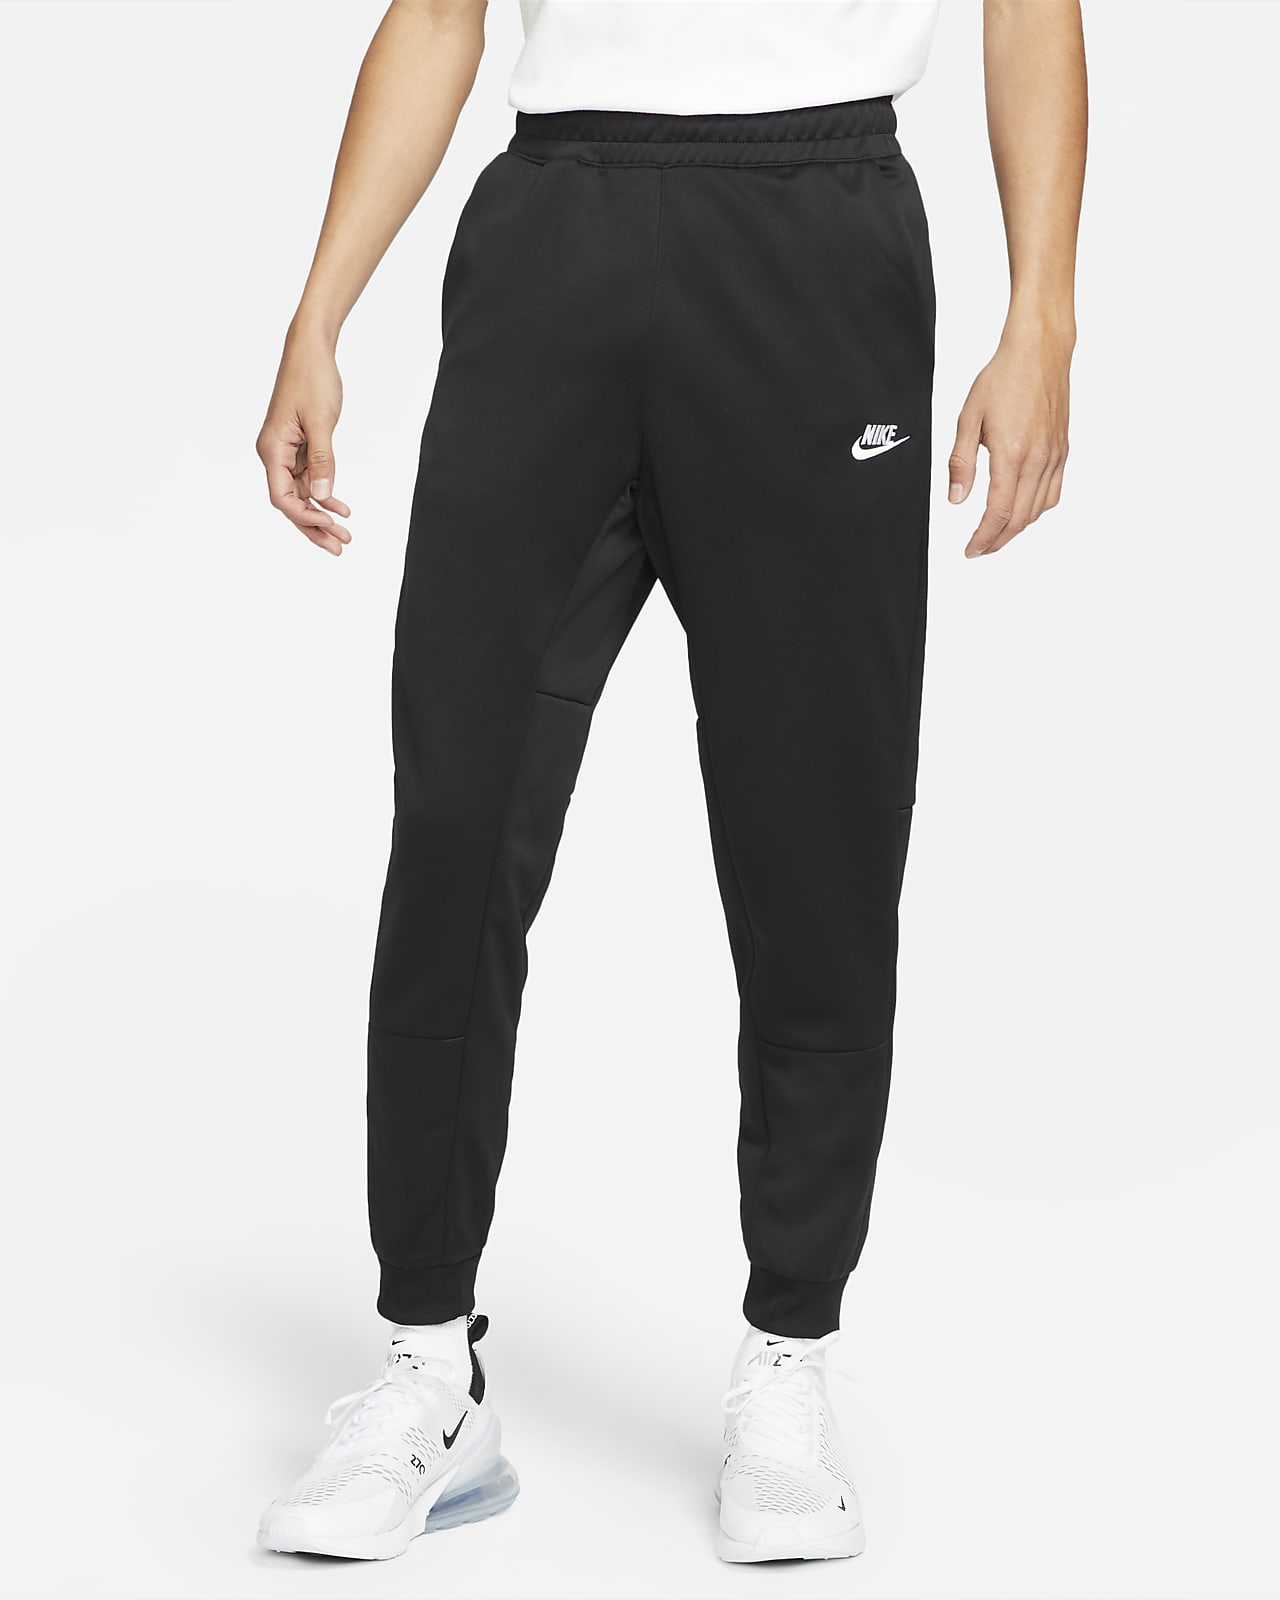 Manual explorar Adolescente  Nike Sportswear Tribute Men's Joggers. Nike JP